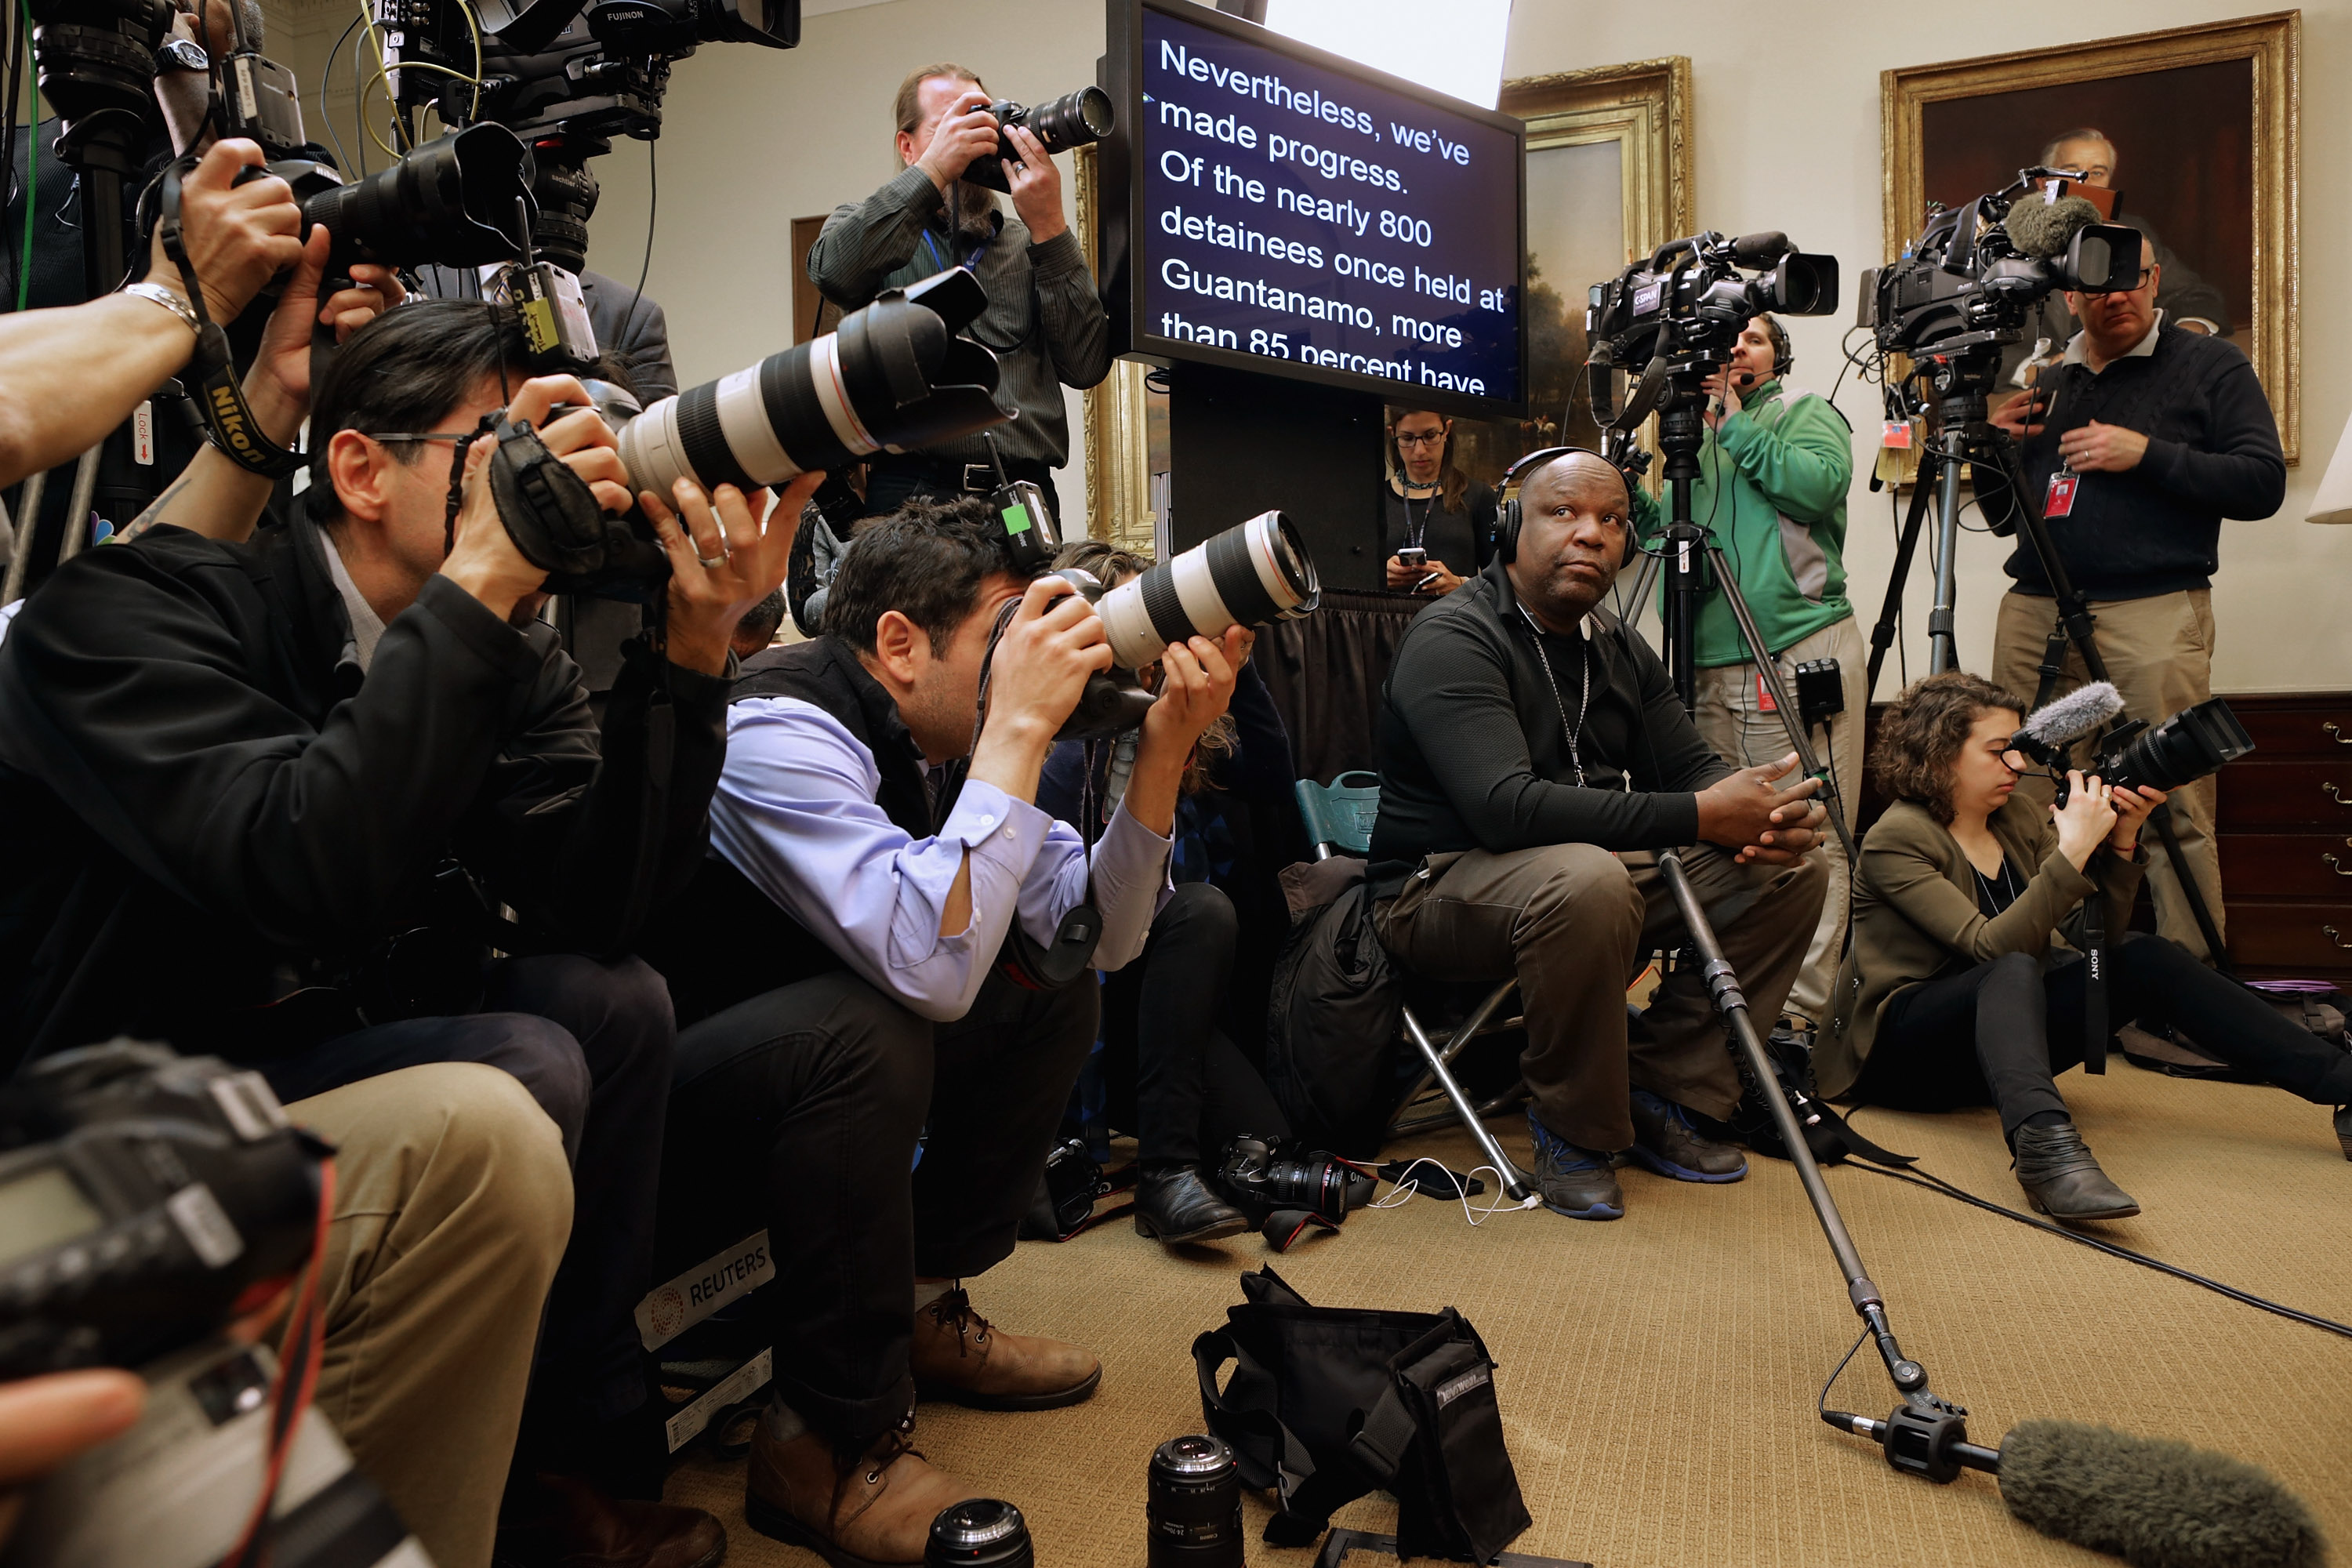 WASHINGTON, DC - FEBRUARY 23:  Journalists cover President Barack Obama making a statement about his plan to close the detention camp at the Guantanamo Bay Naval Base and relocate the terrorism suspects there to the United States in the Roosevelt Room at the White House February 23, 2016 in Washington, DC. Attempting to follow through with a campaign pledge he made in 2008, Obama will continue to face an uphill battle to close the prison in Cuba because of strong opposition to the plan by congressional Republicans.  (Photo by Chip Somodevilla/Getty Images)